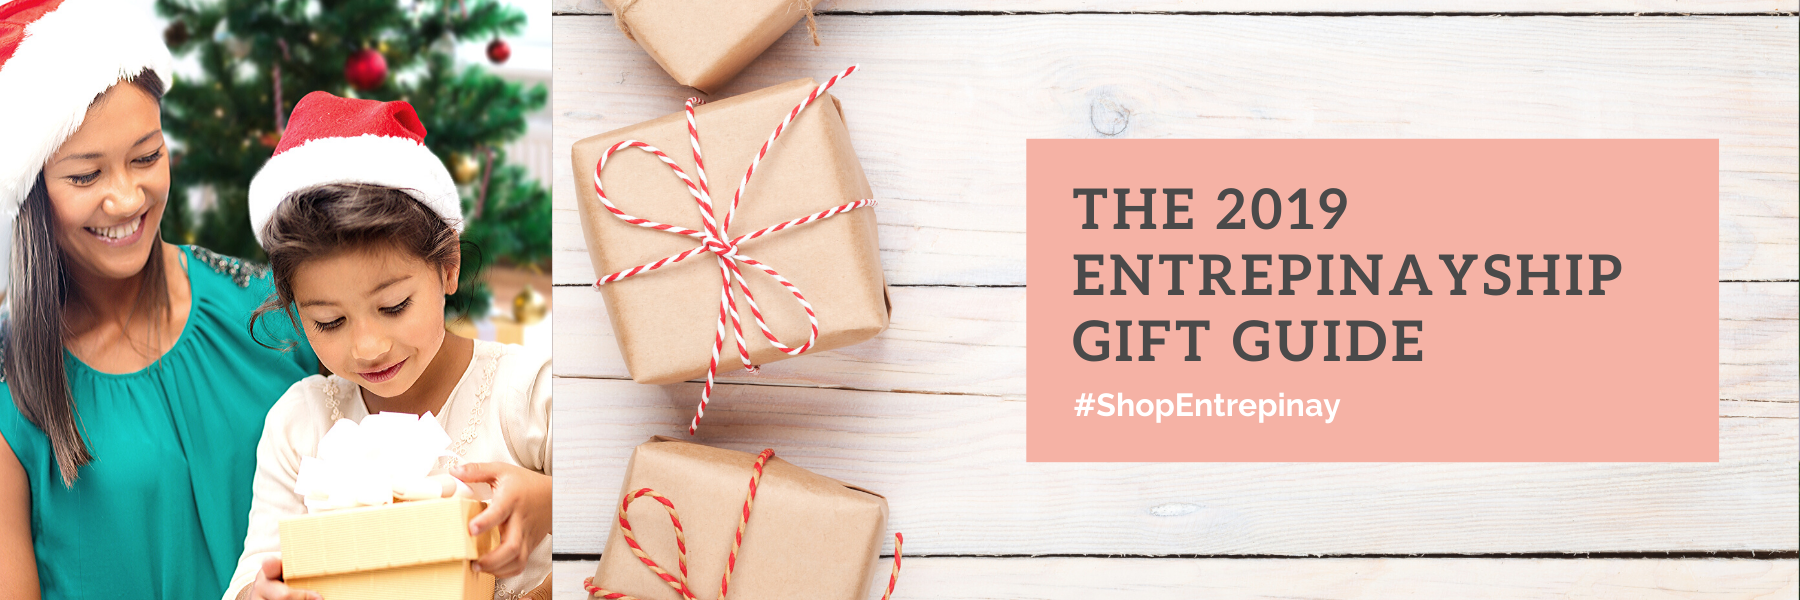 Entrepinayship 2019 Gift Guide